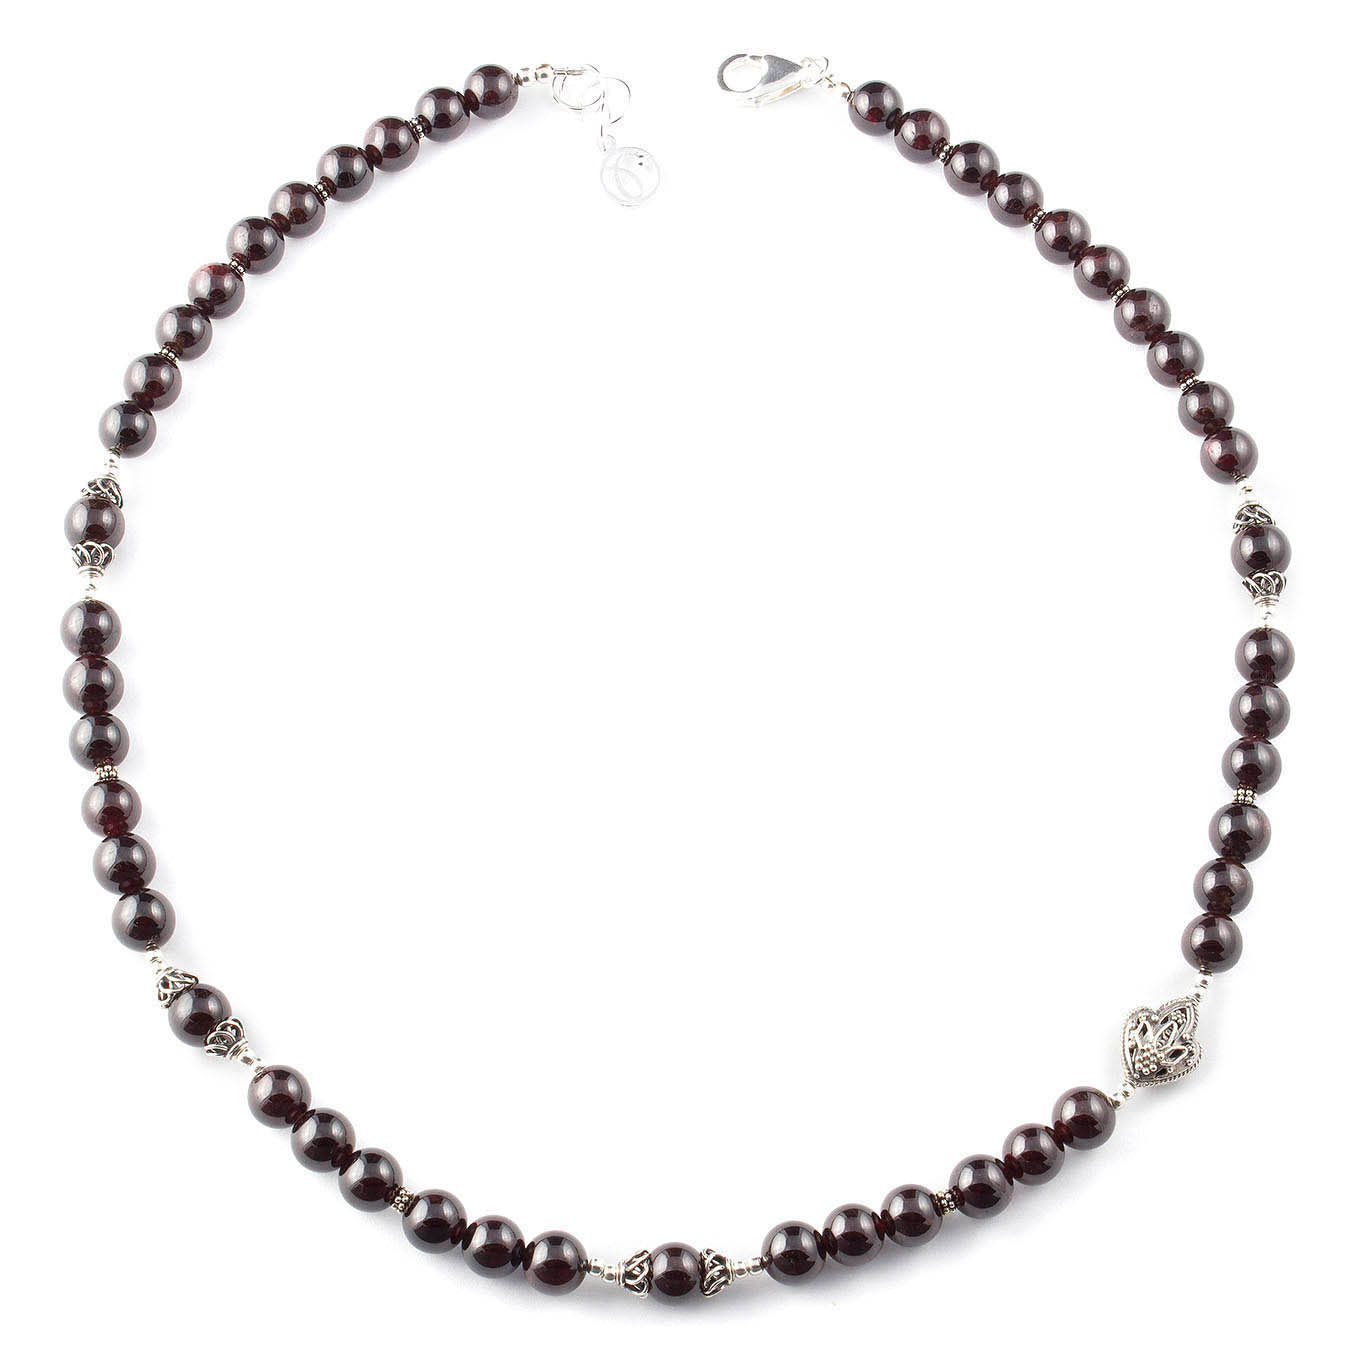 Handmade January birthstone jewelry necklace made of garnet and silver